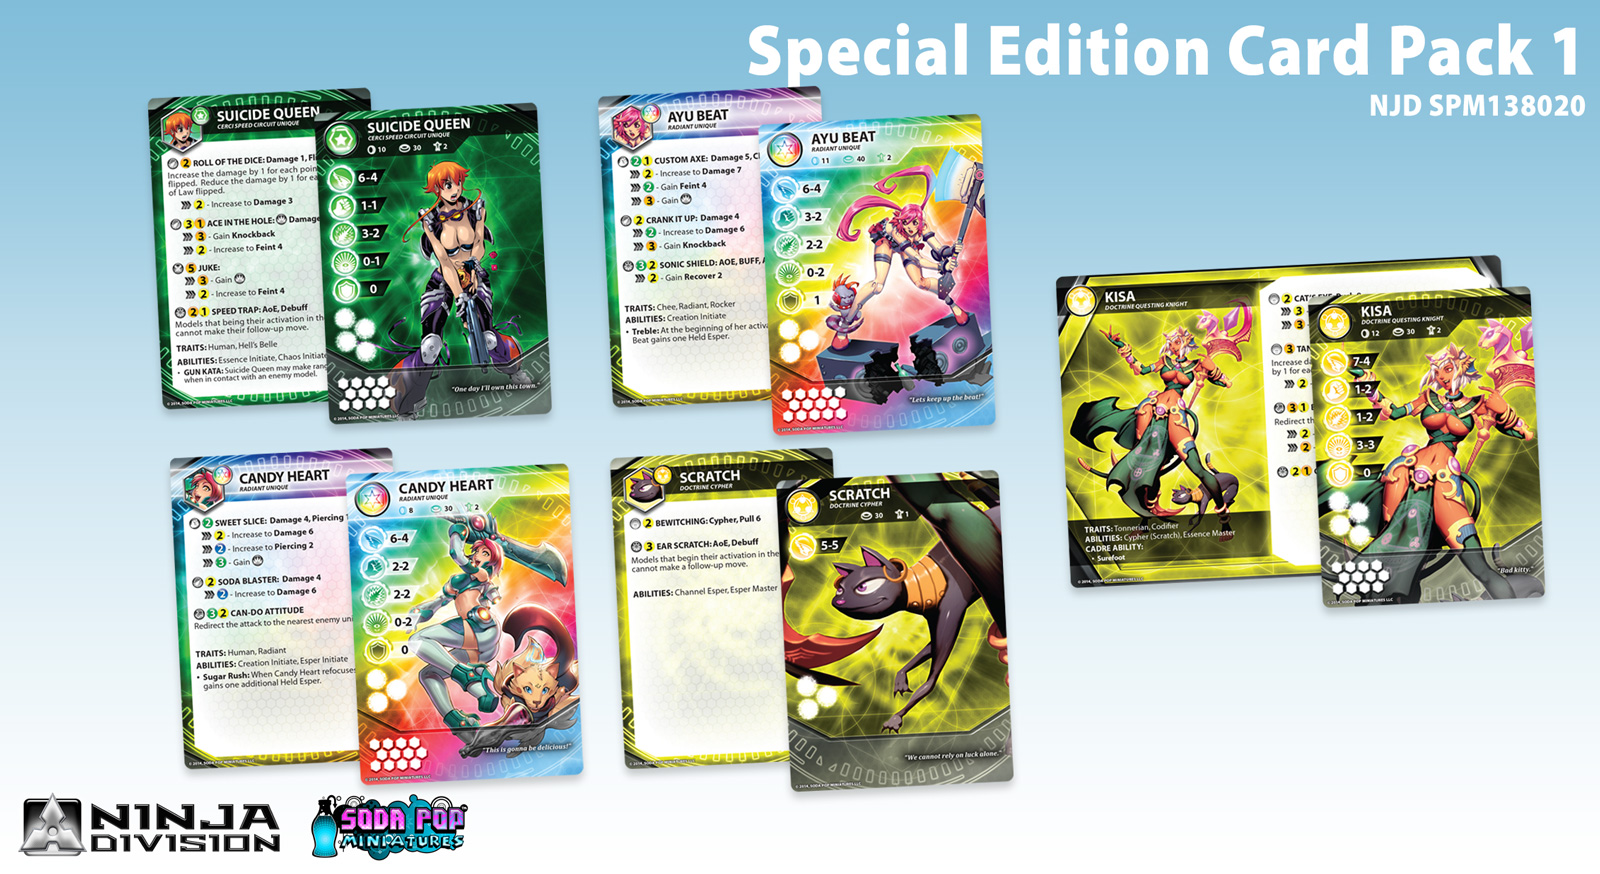 RK-Solicit-Limited-Edition-Cards